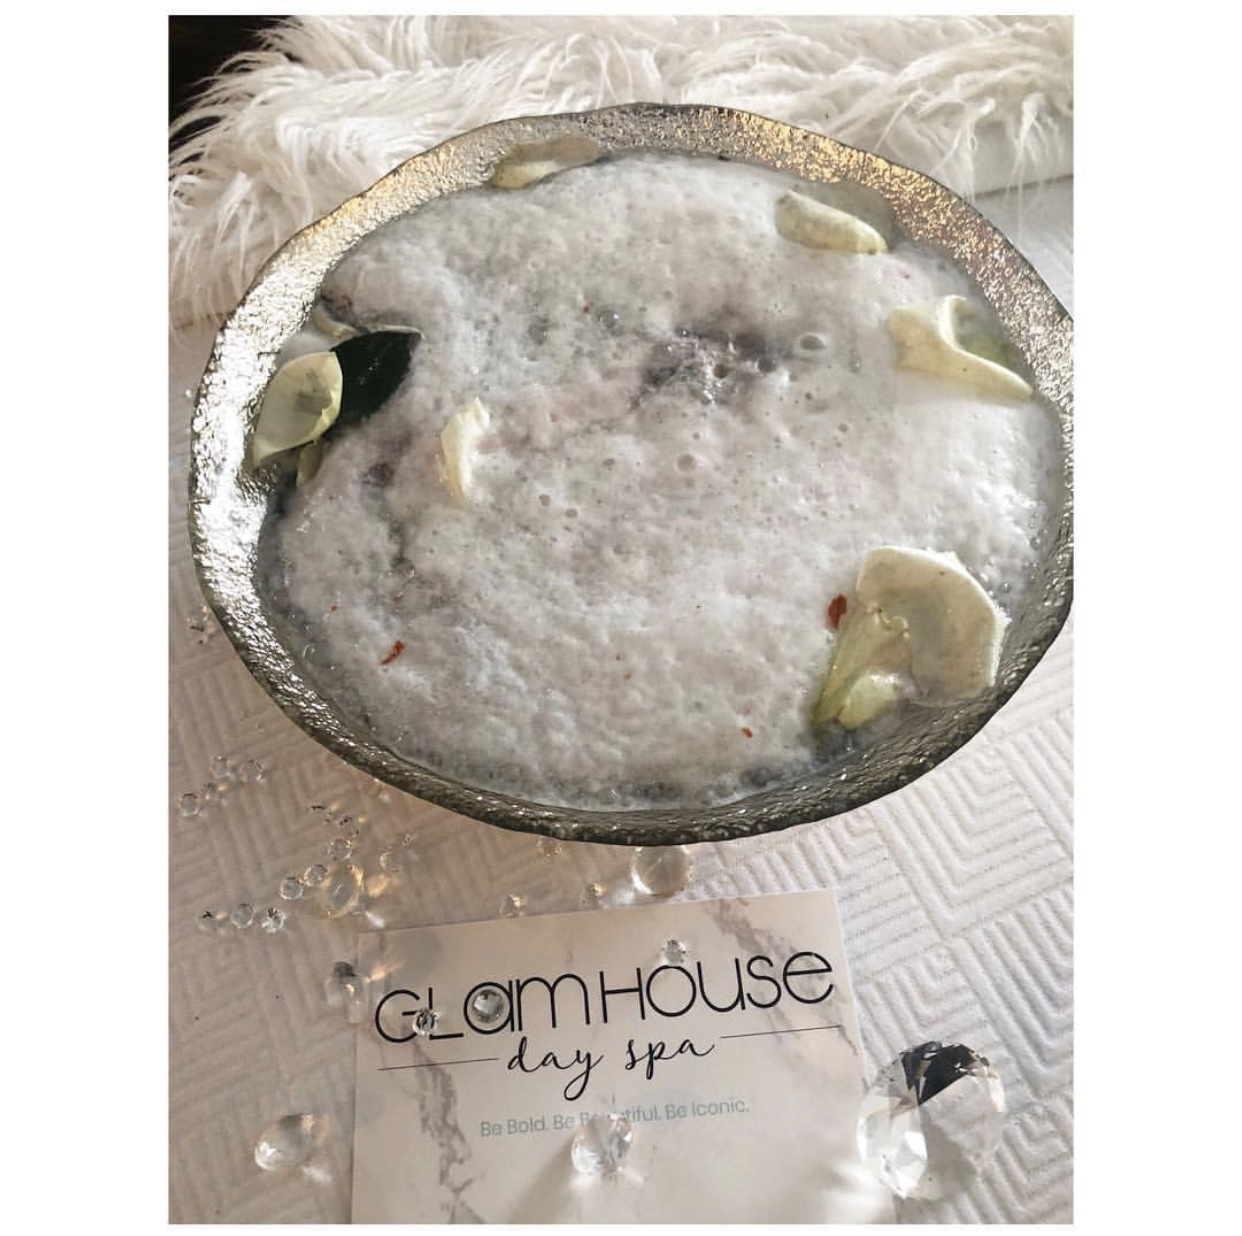 Luxurious Lathers - Coming Soon!The Glamhouse Girls are hard at work designing and producing handmade bath products for our very own line: Luxurious Lathers!!